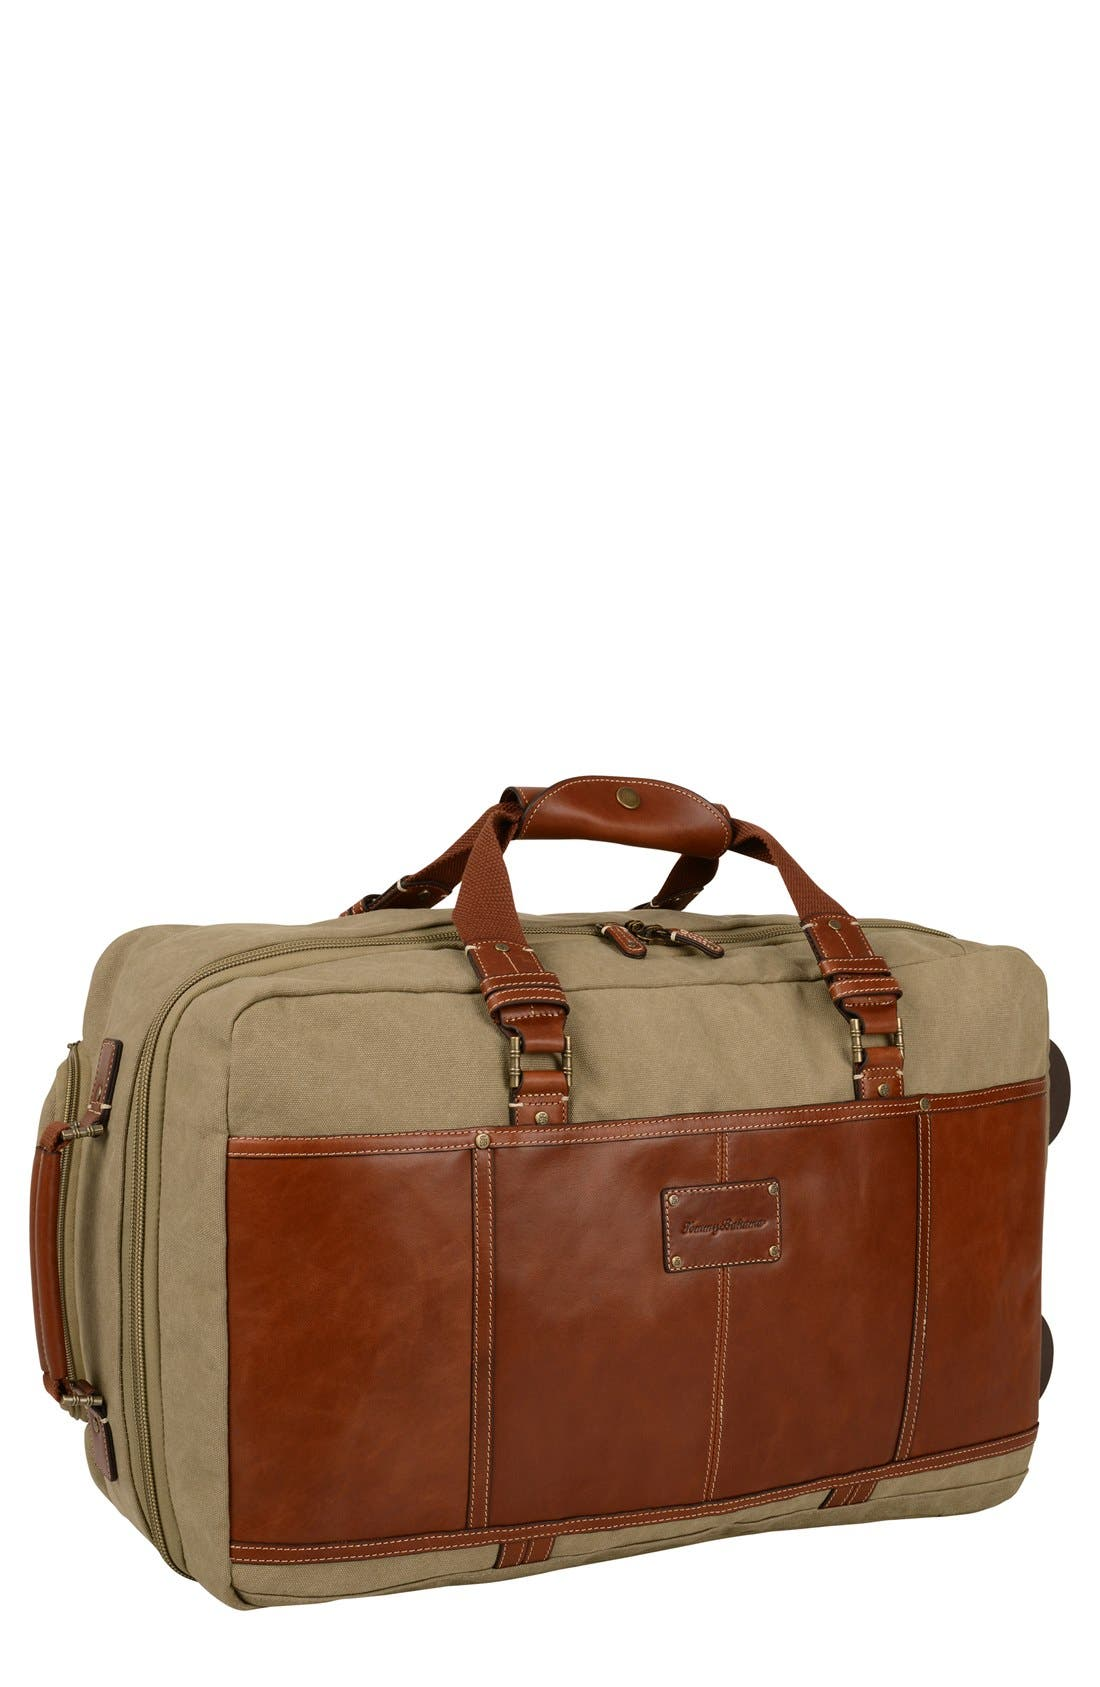 Tommy Bahama Canvas & Leather Wheeled Suitcase (24 inch)